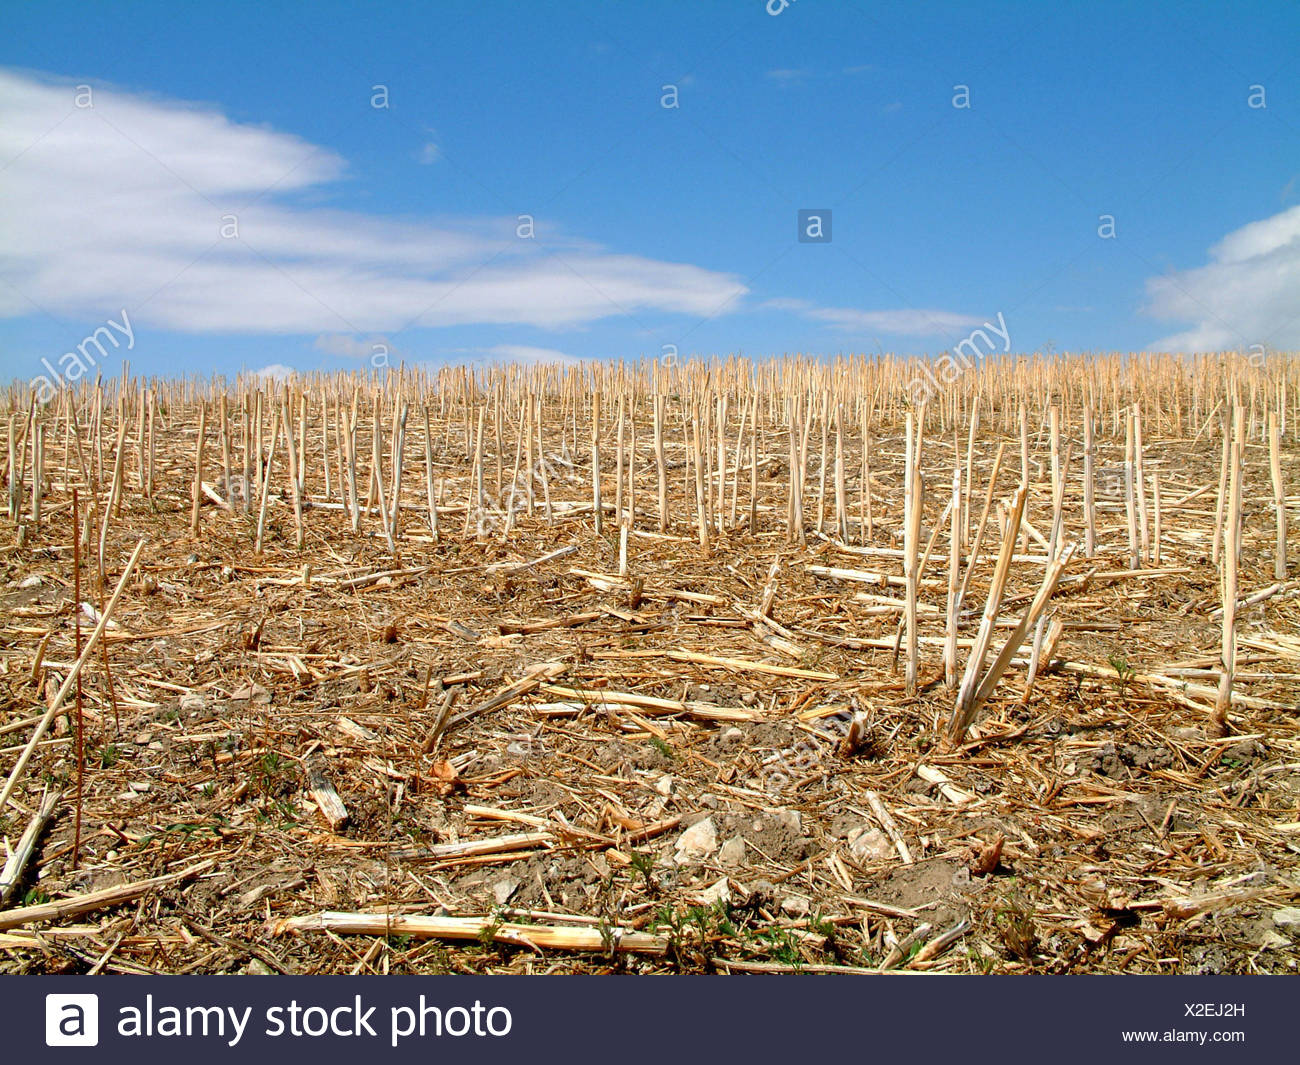 agriculture,farming,dryness,drought,stubble field,farmer,harvest,grain,cereal - Stock Image